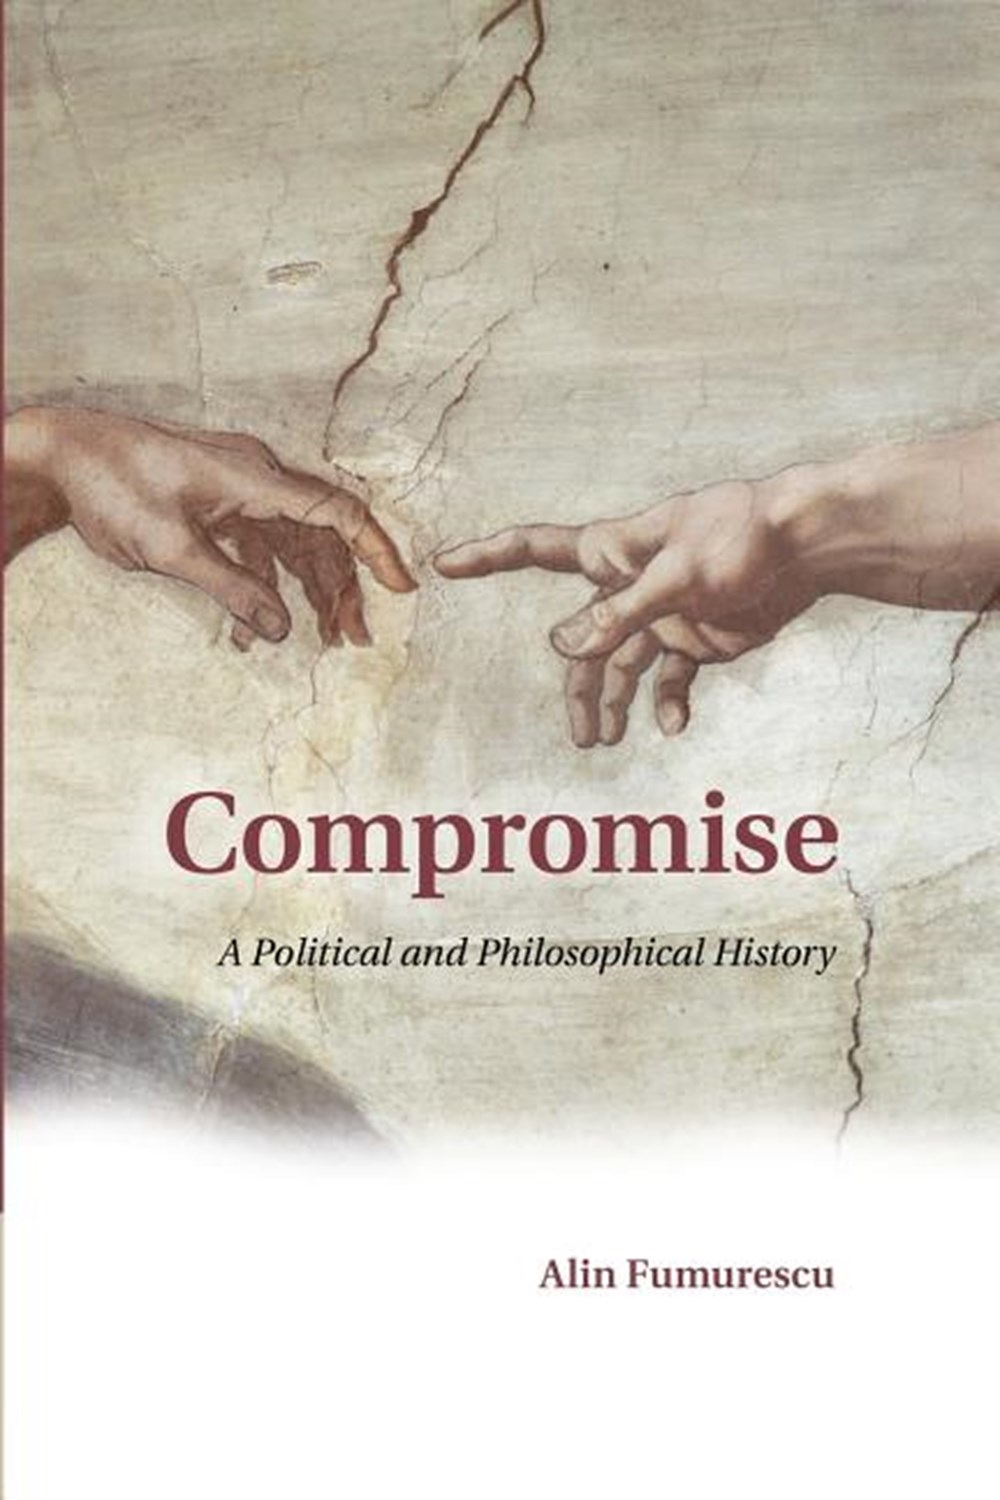 Compromise A Political and Philosophical History